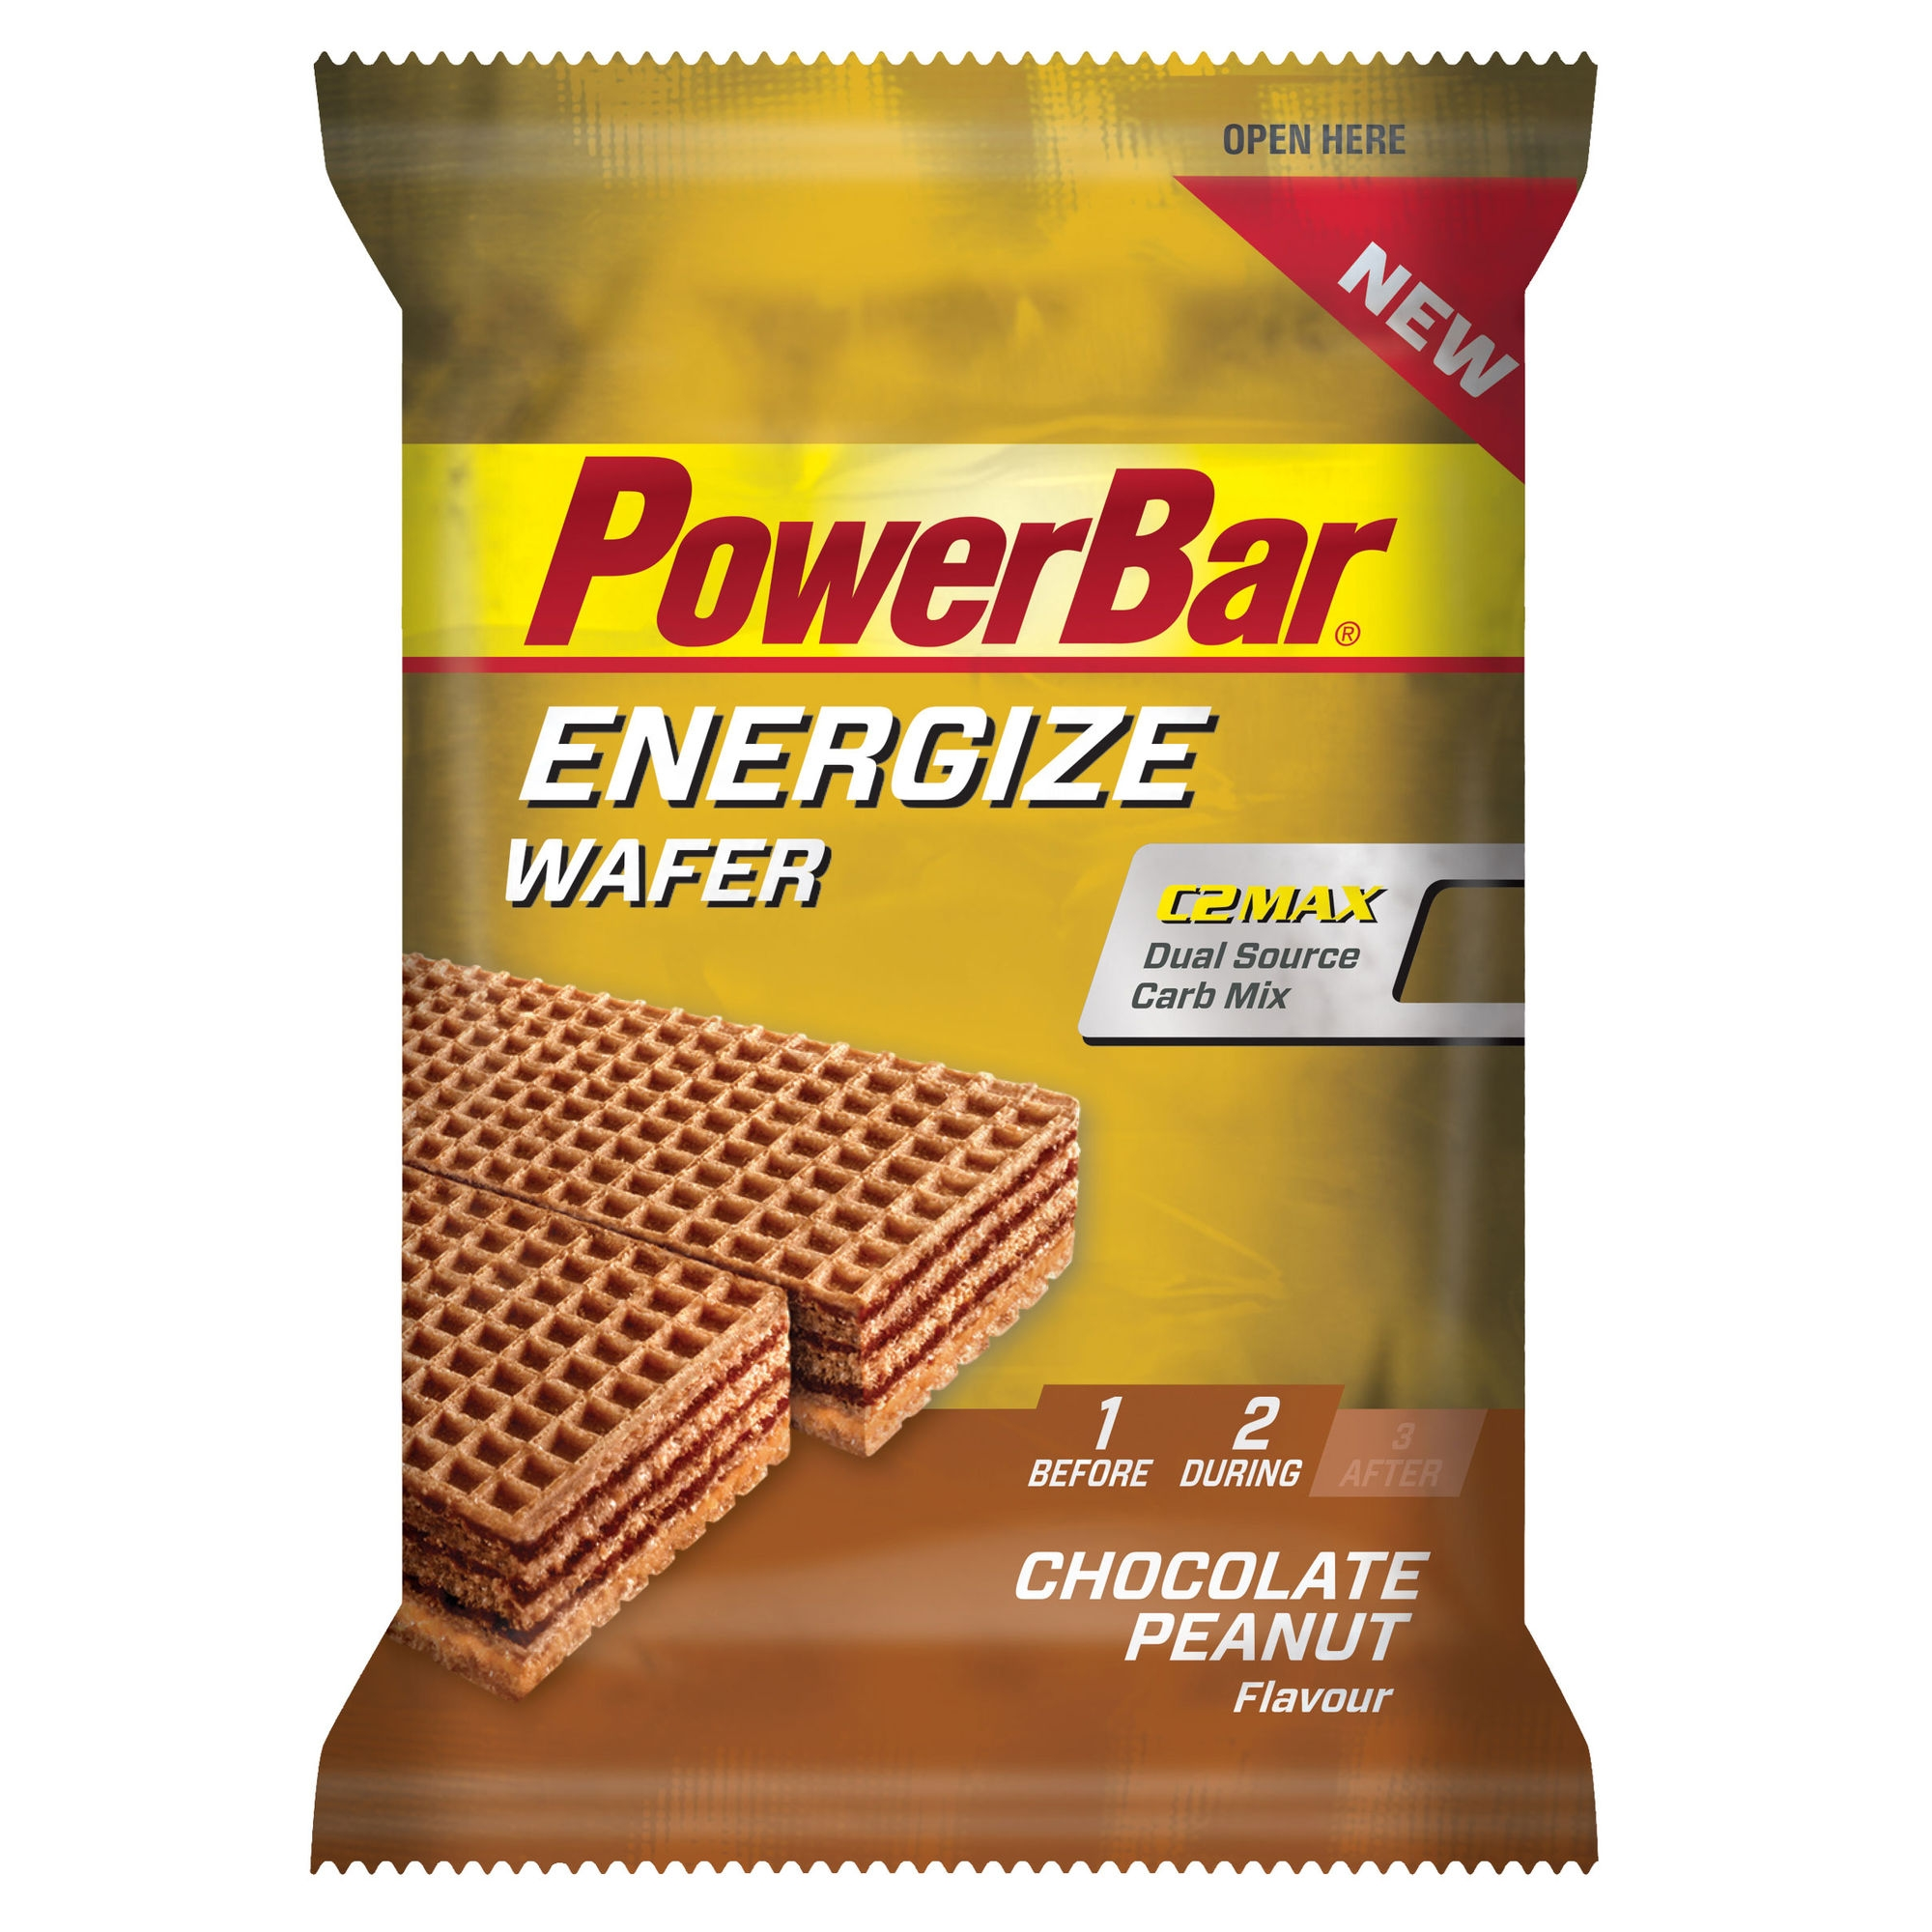 PowerBar Energize Wafer Choclate Peanut 40g